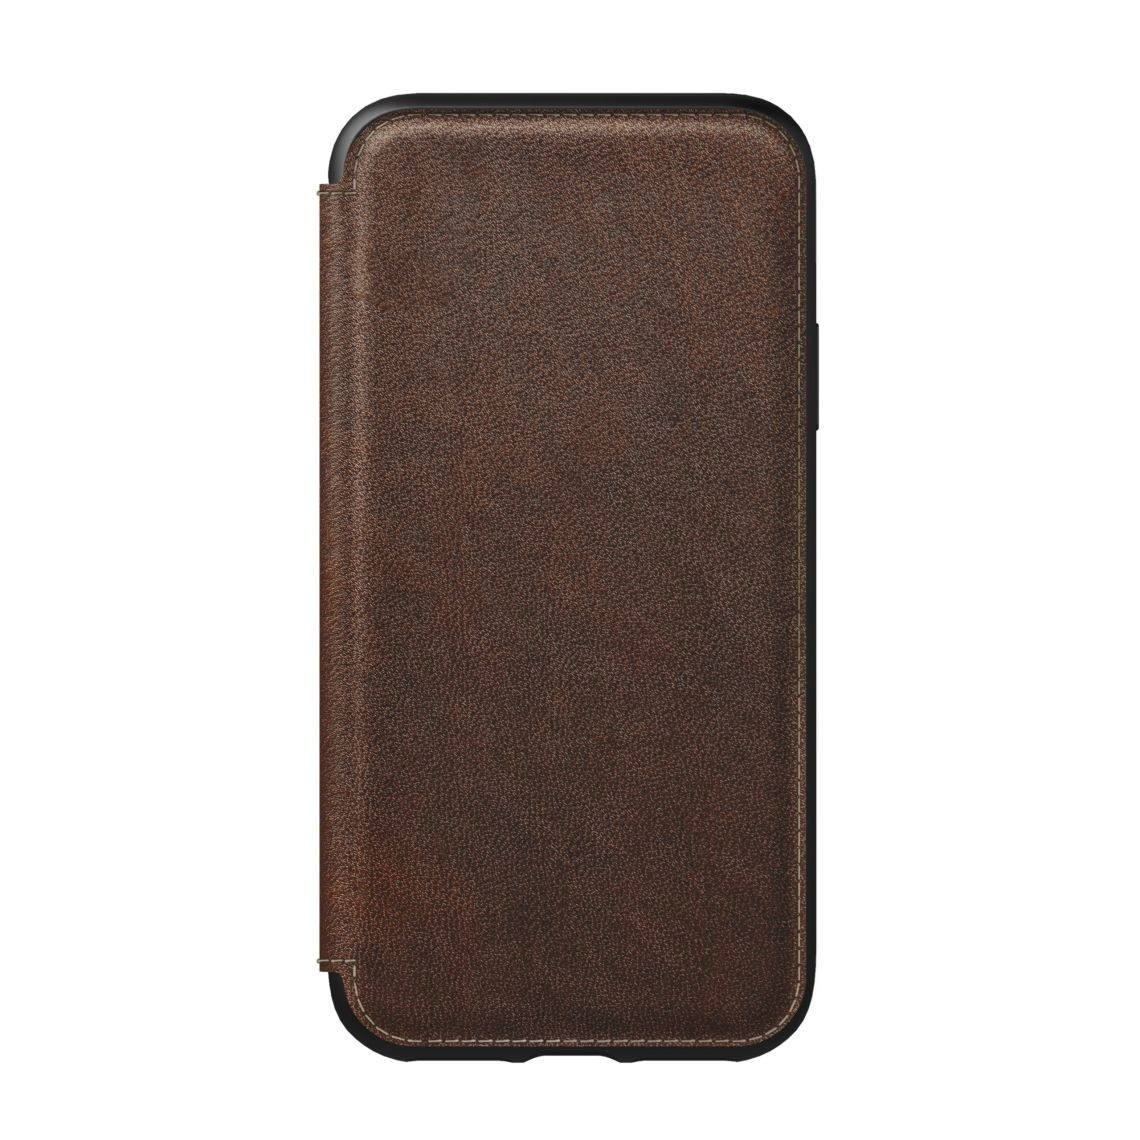 Nomad Horween Leather Rugged Folio for iPhone XS / X - Rustic Brown, NM21FR0H00